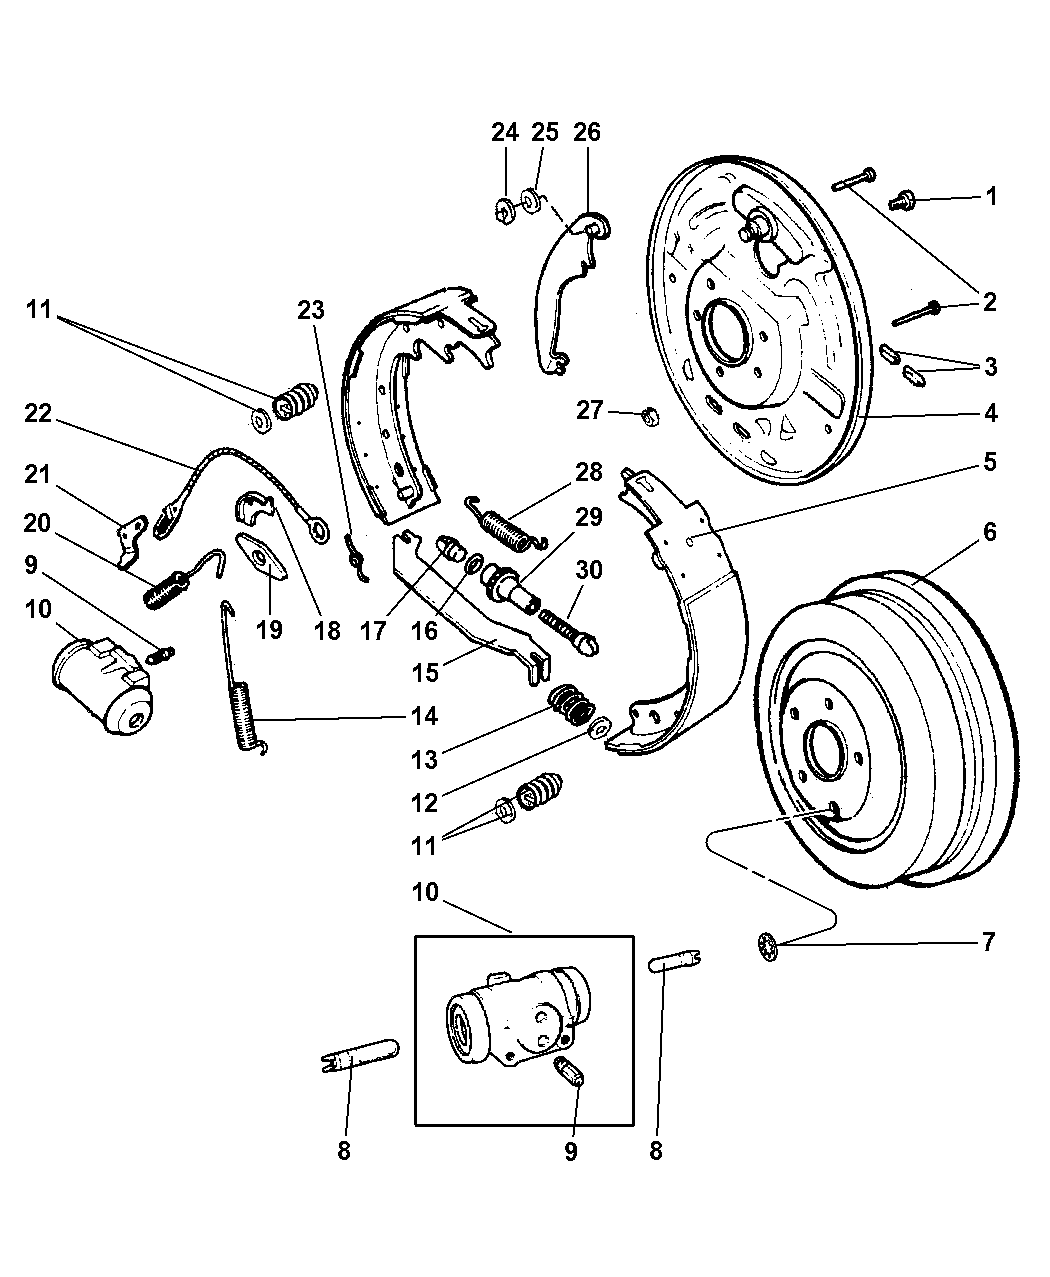 2002 Jeep Liberty Brakes, Rear